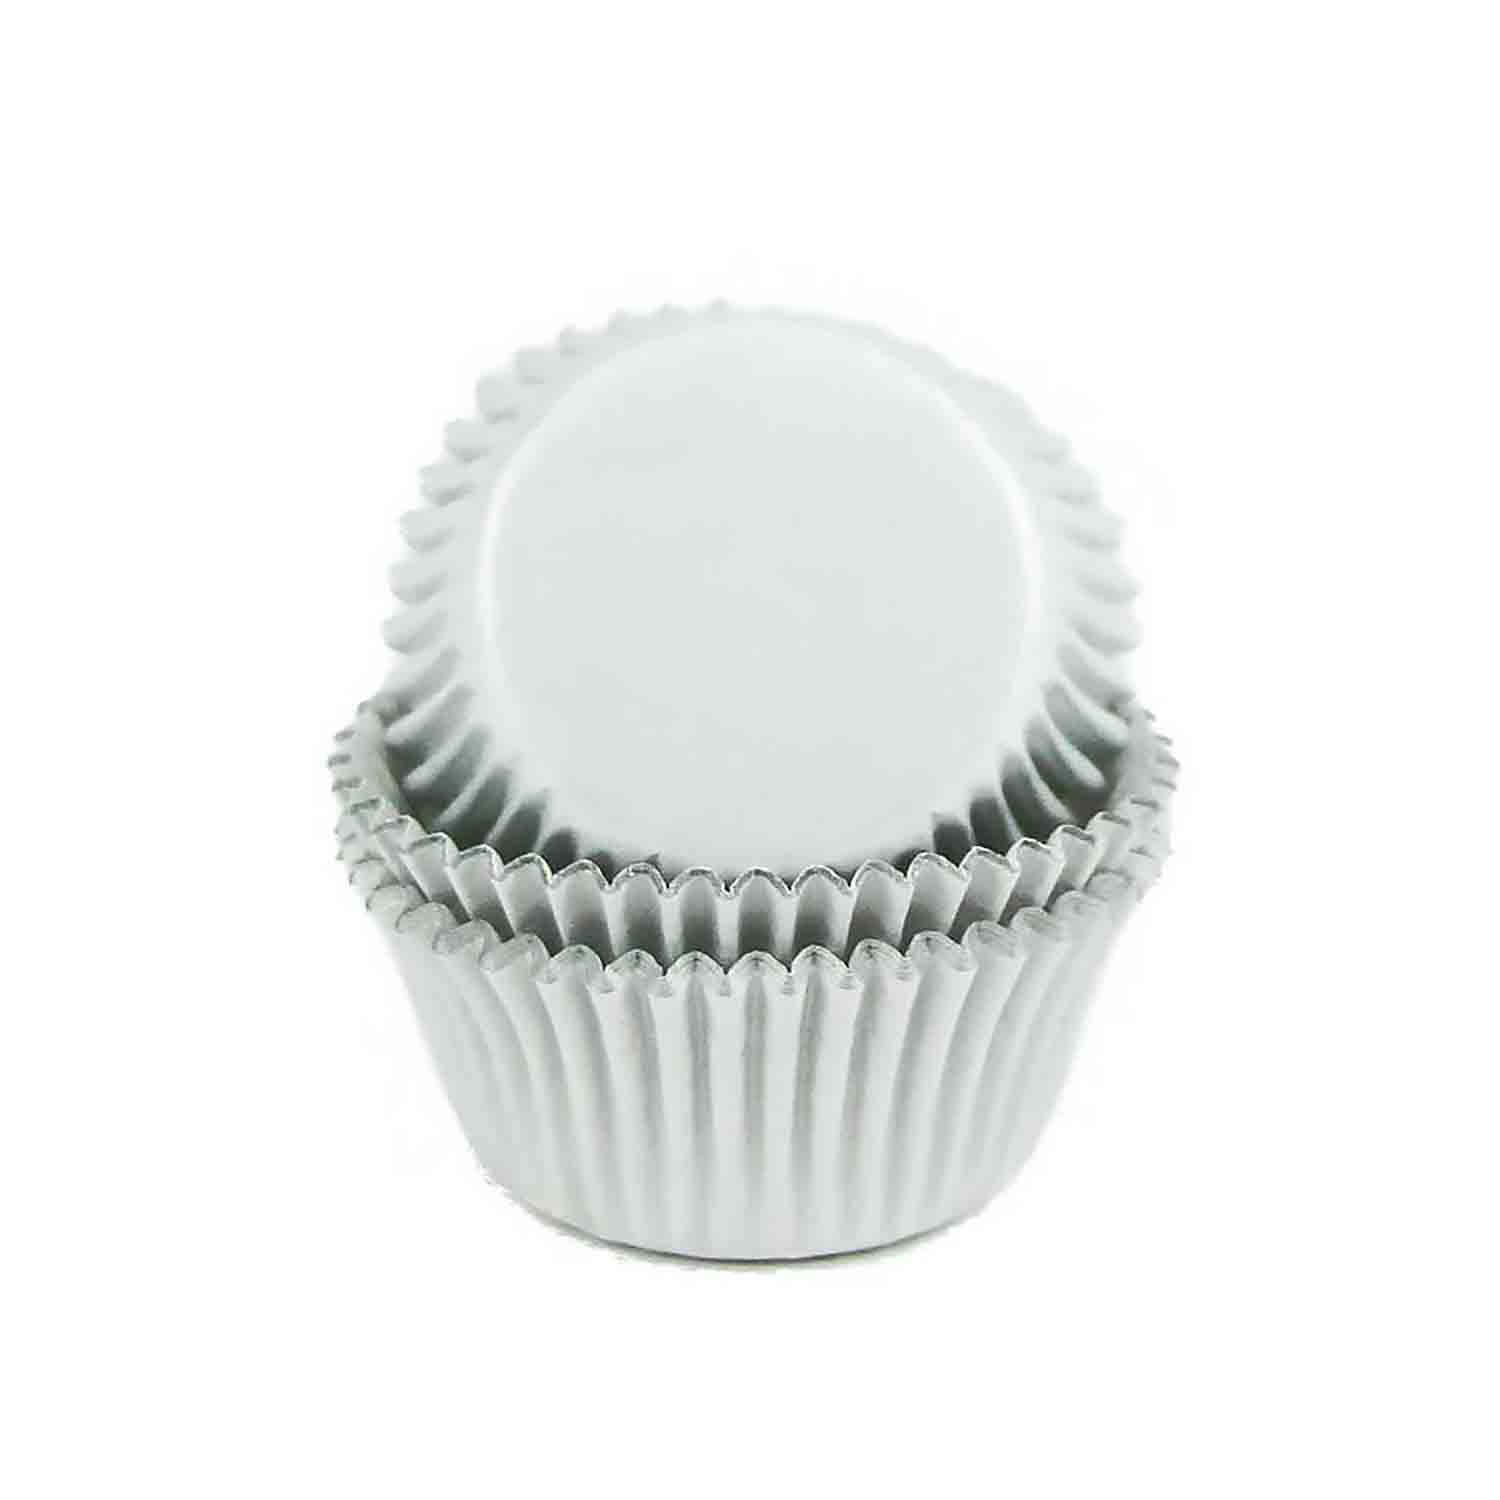 White Foil Mini Baking Cups /# 6 Candy Cup